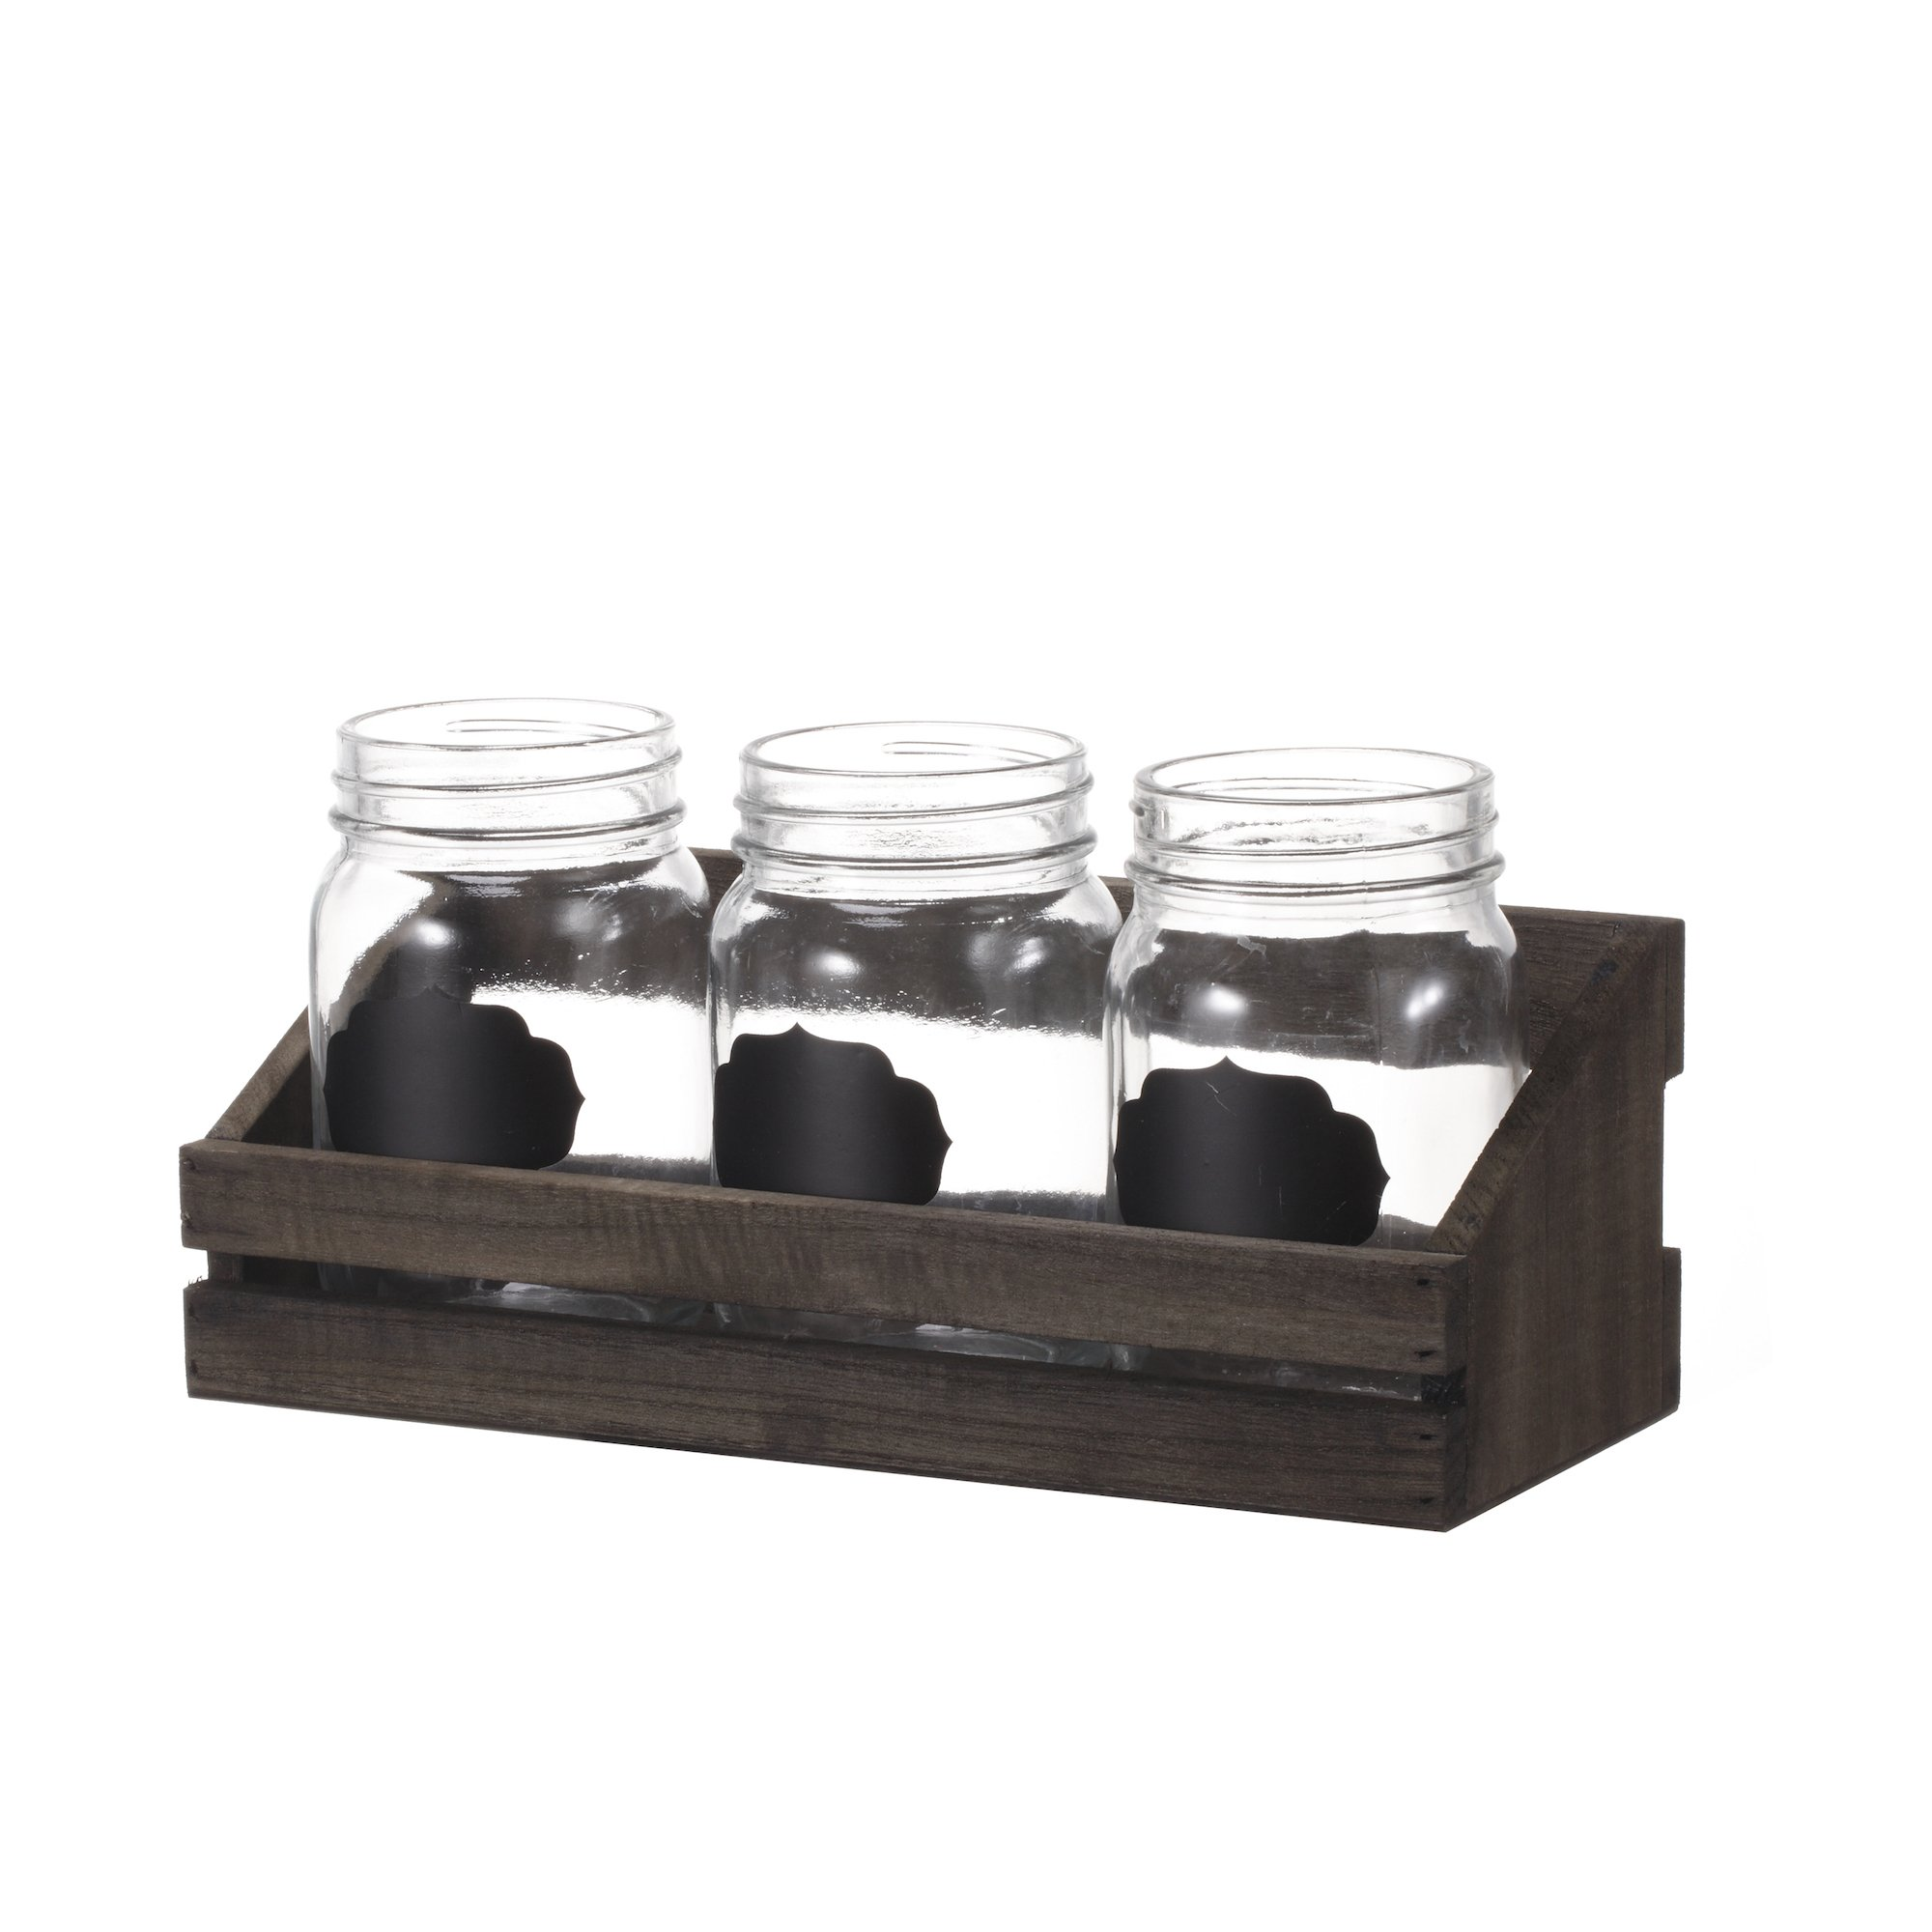 V-More Bud Vase with Chicken Wire Basket V-More Rustic Glass Mason Jar with Chalkboard Label and Wooden Tray 6.5-inch Tall For Home Decor Wedding Party Celebration